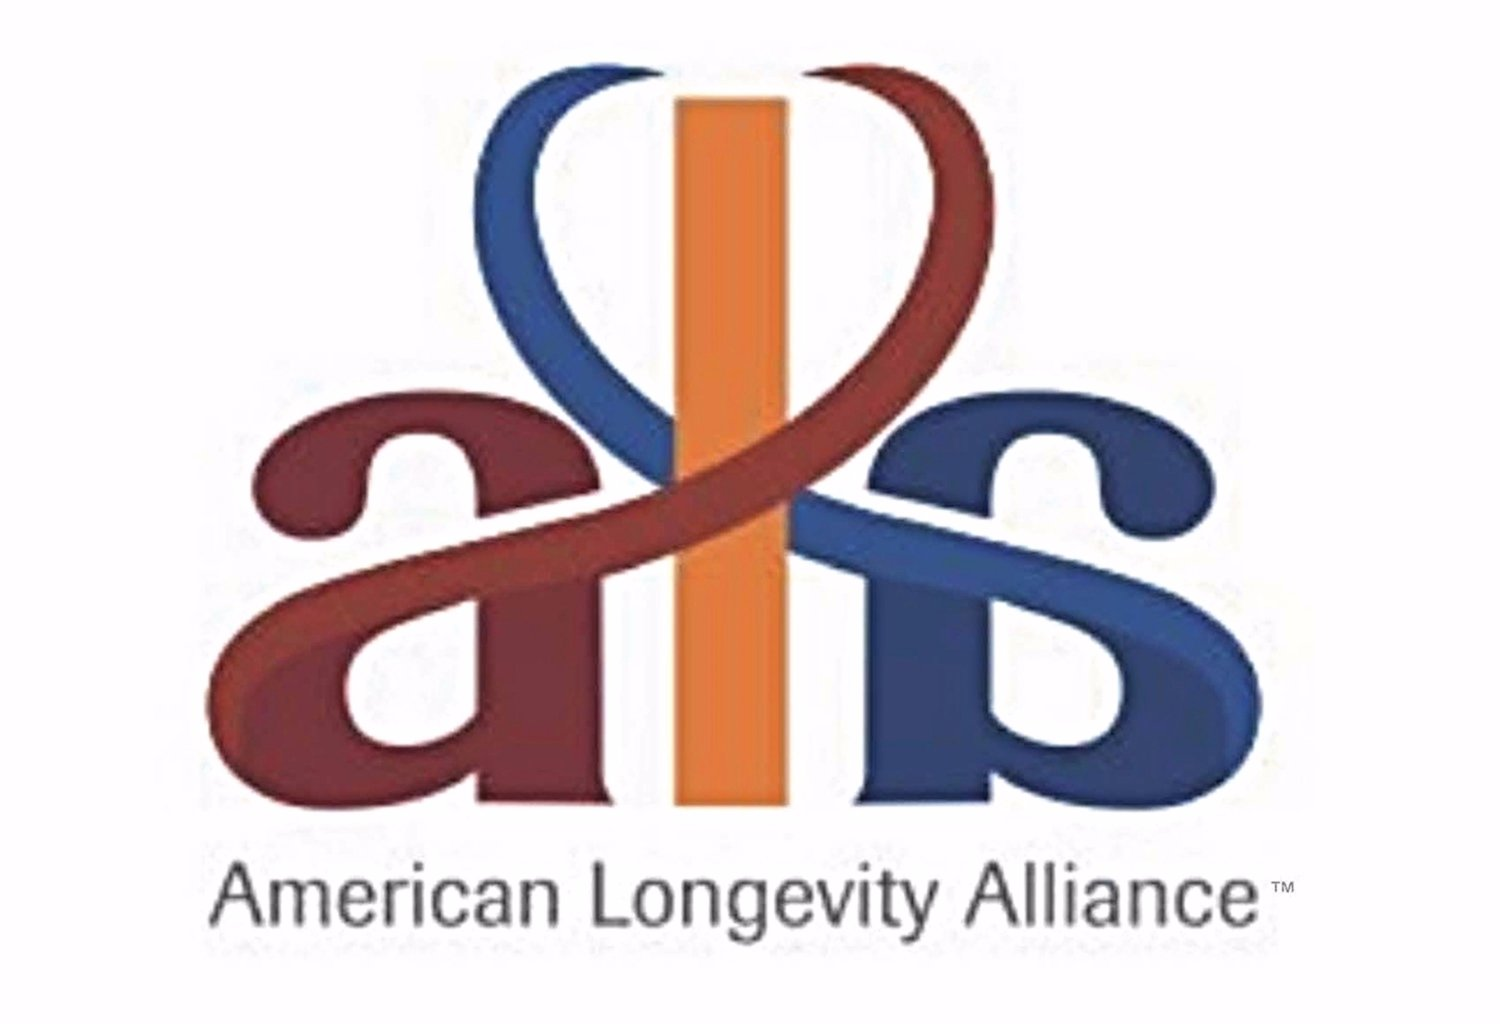 American Longevity Alliance™